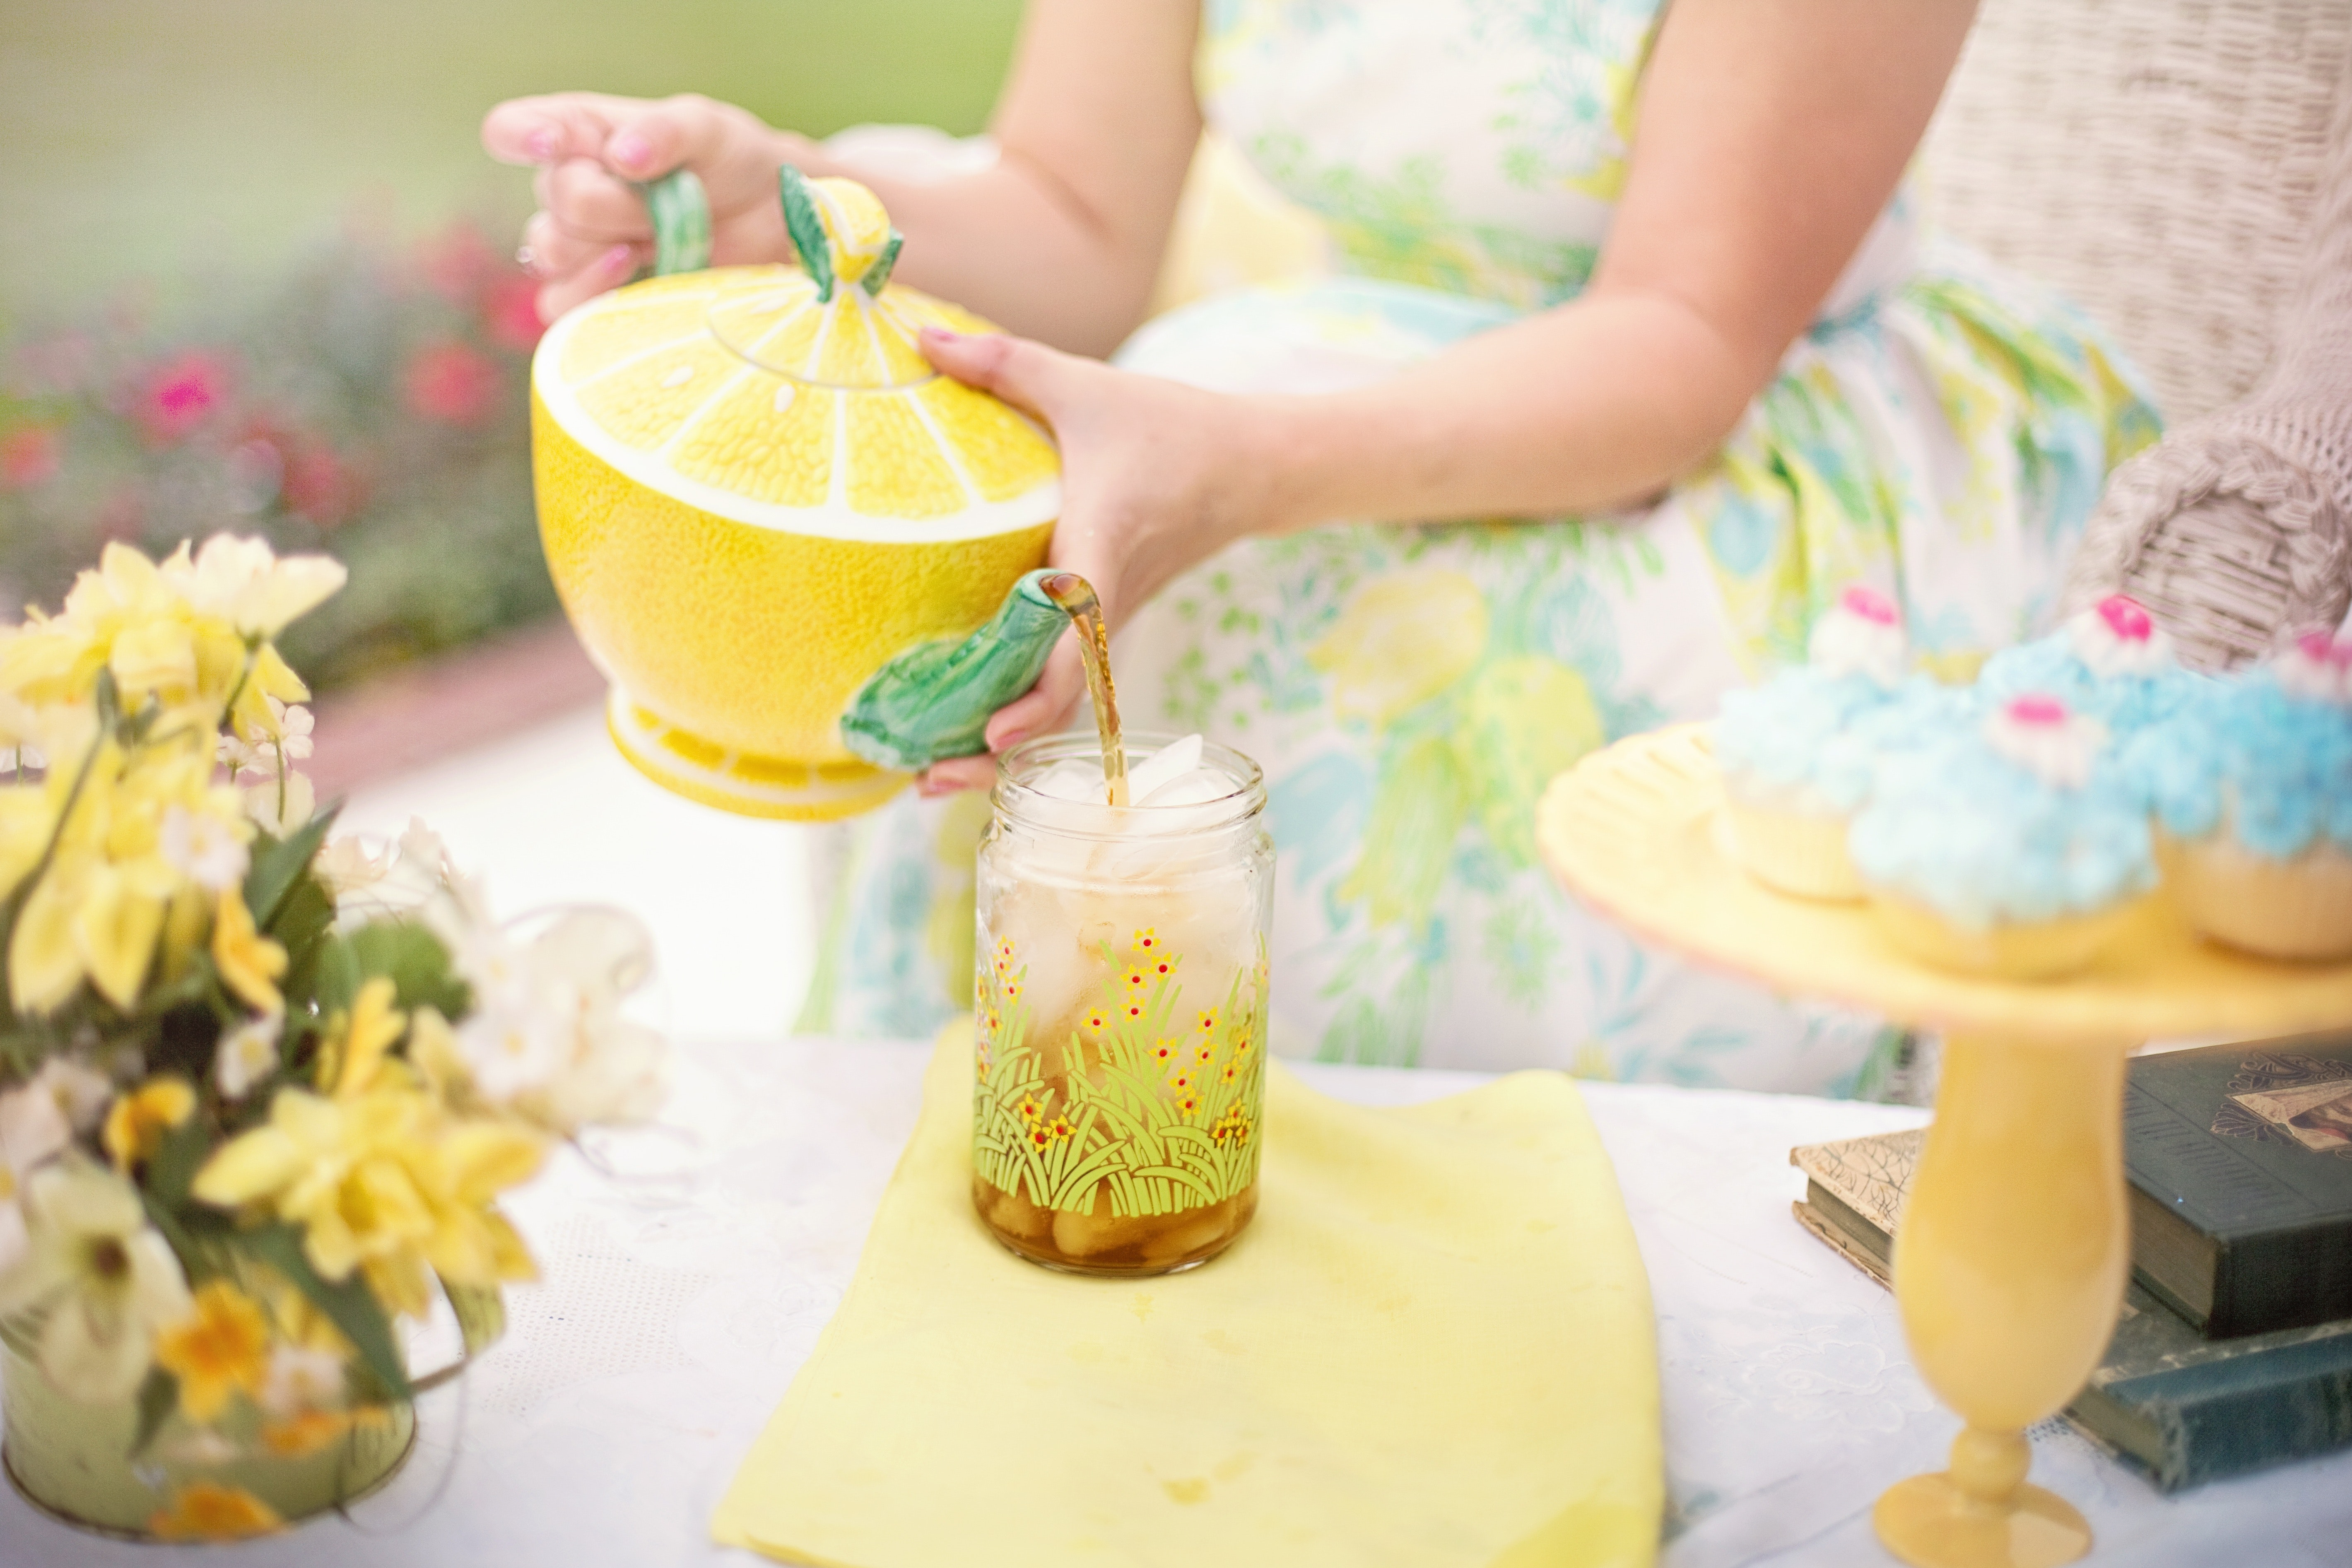 How To Make Iced Tea With Bags 4 Easy Methods